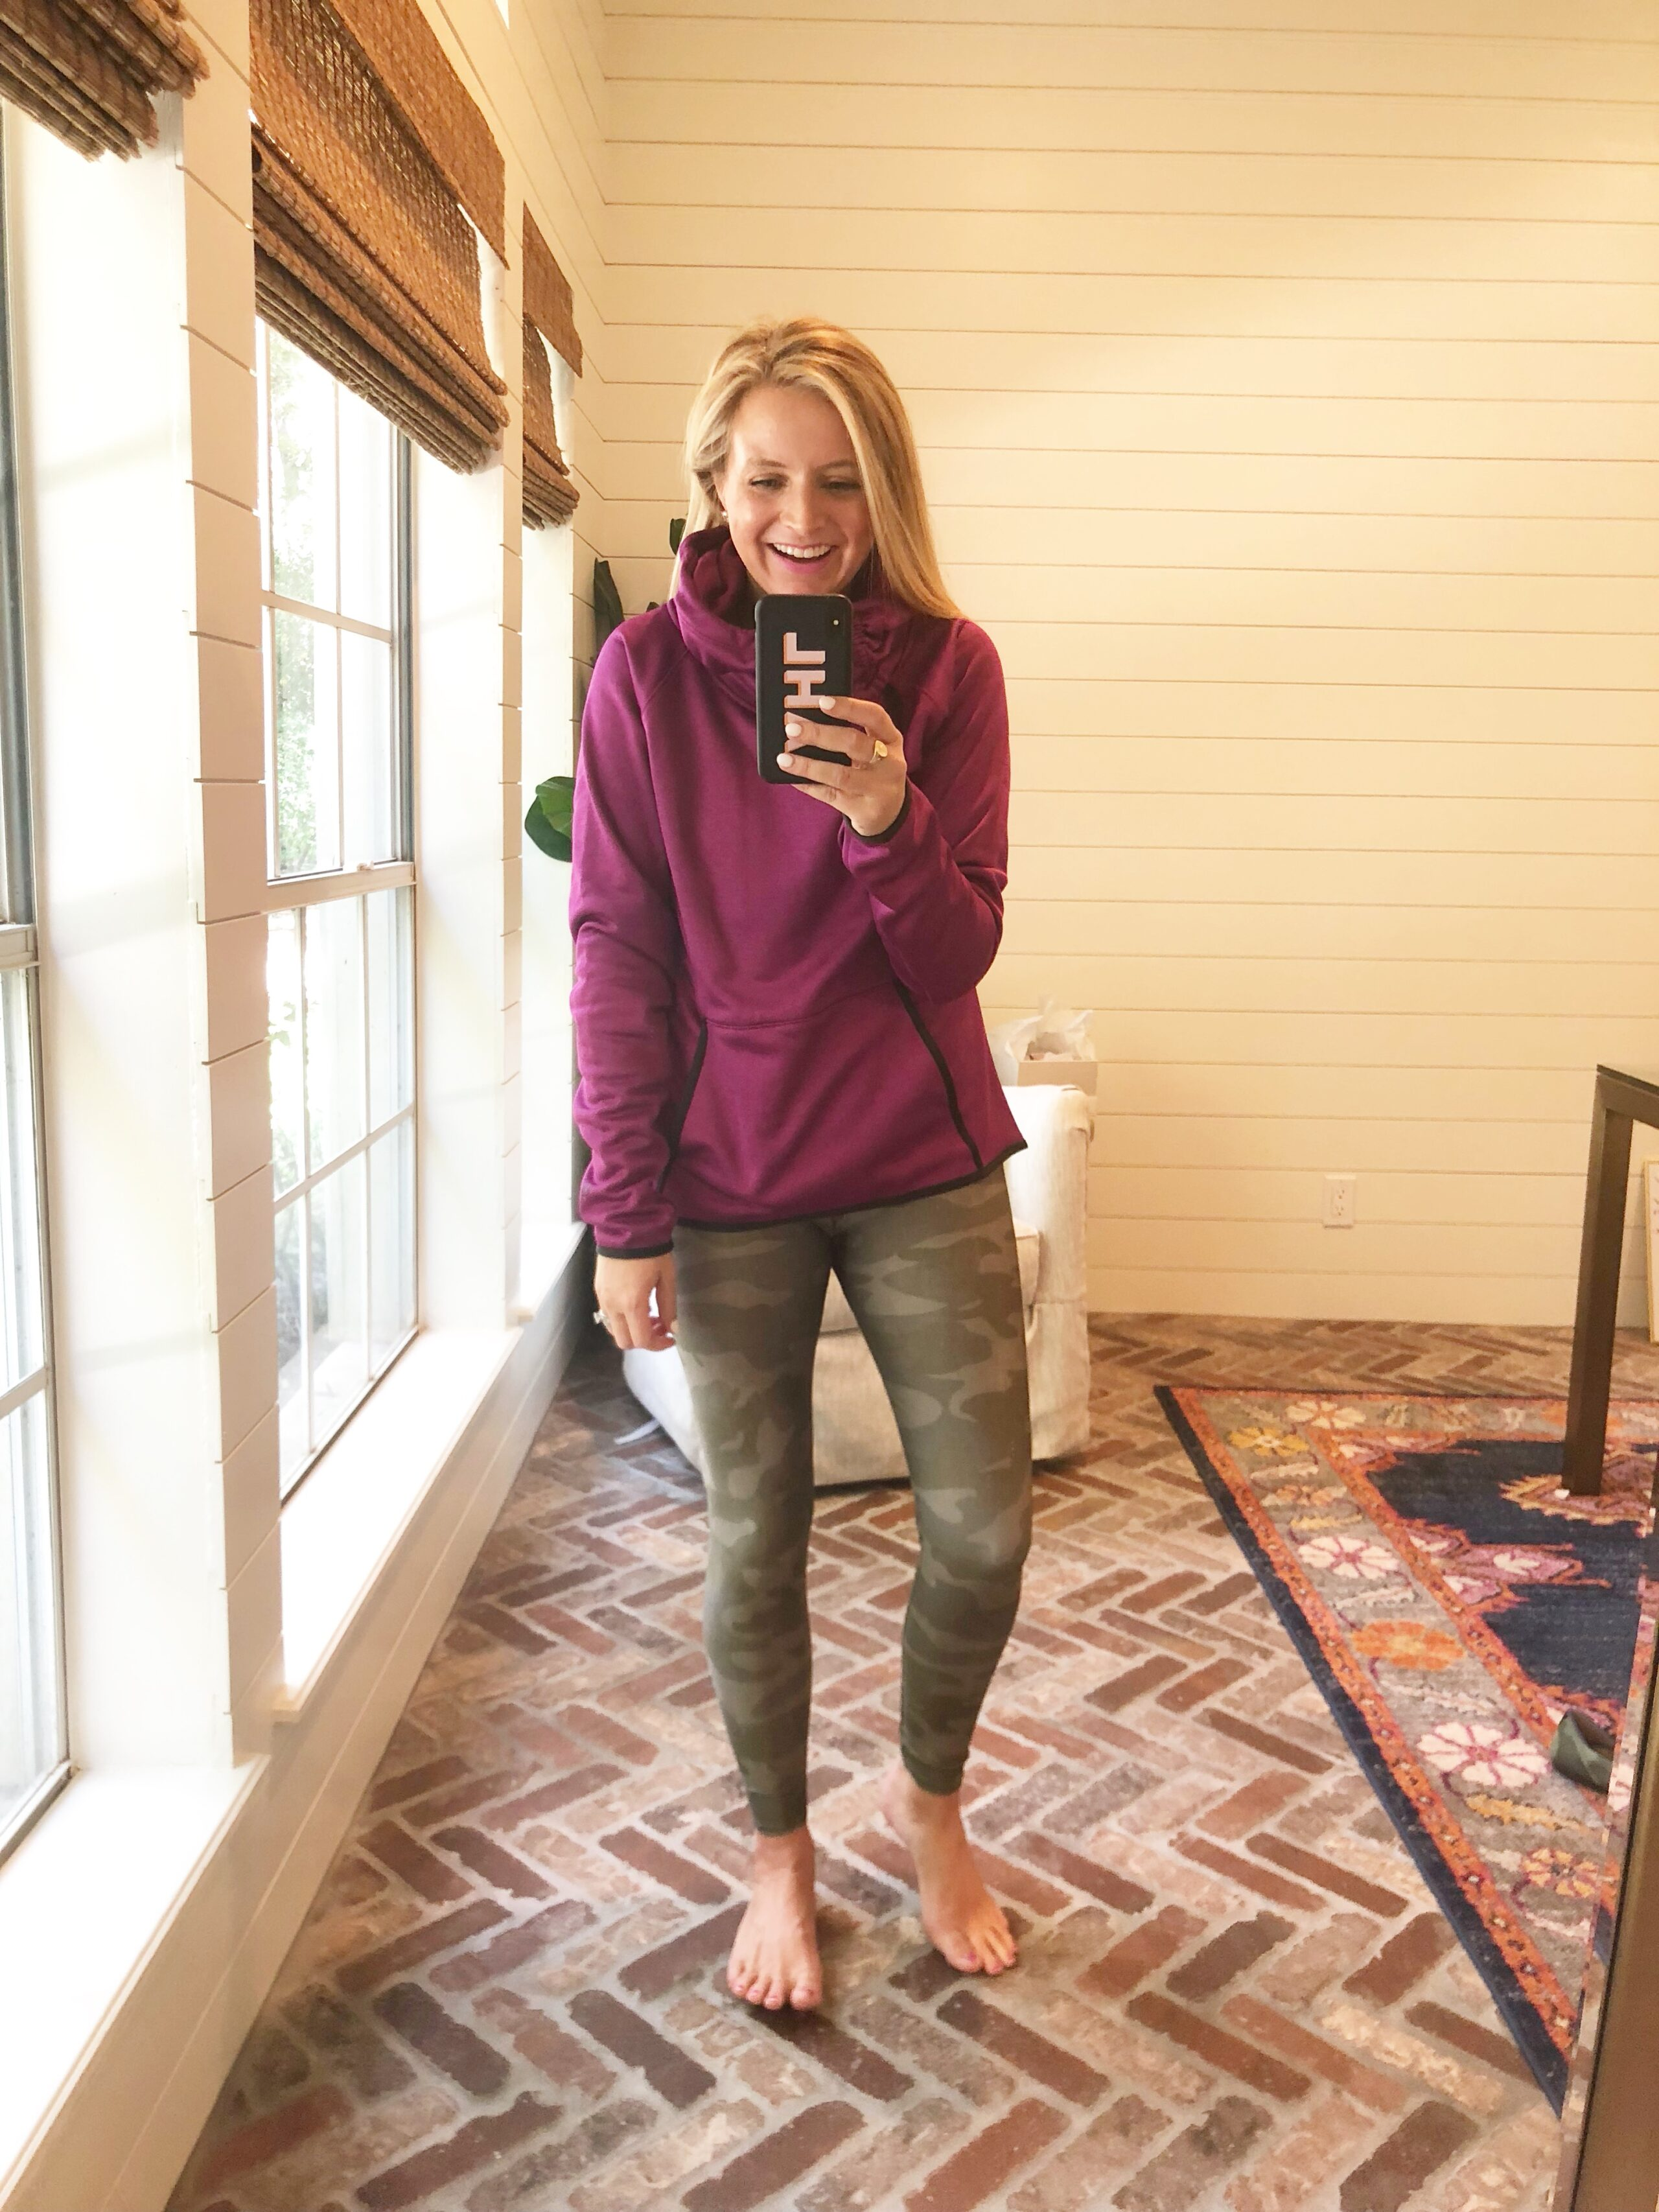 BBG results and Amazon favorites workout wear by popular Houston life and style blogger, Fancy Ashley